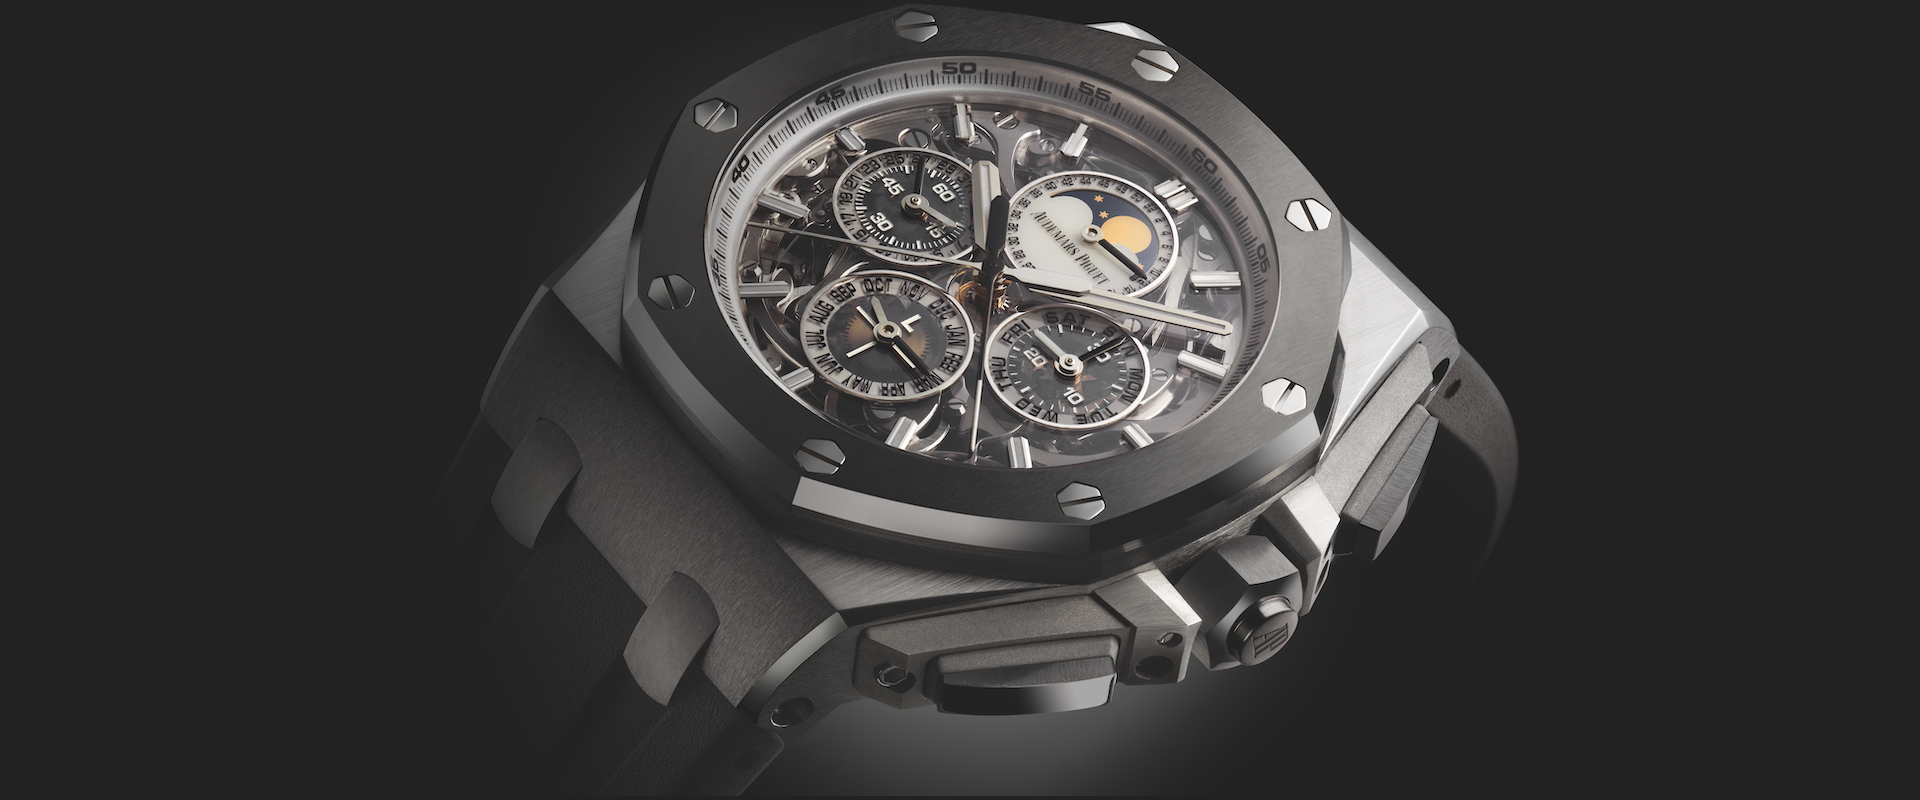 Audemars Piguet Royal Oak Offshore Grande Complication Ref. 26571